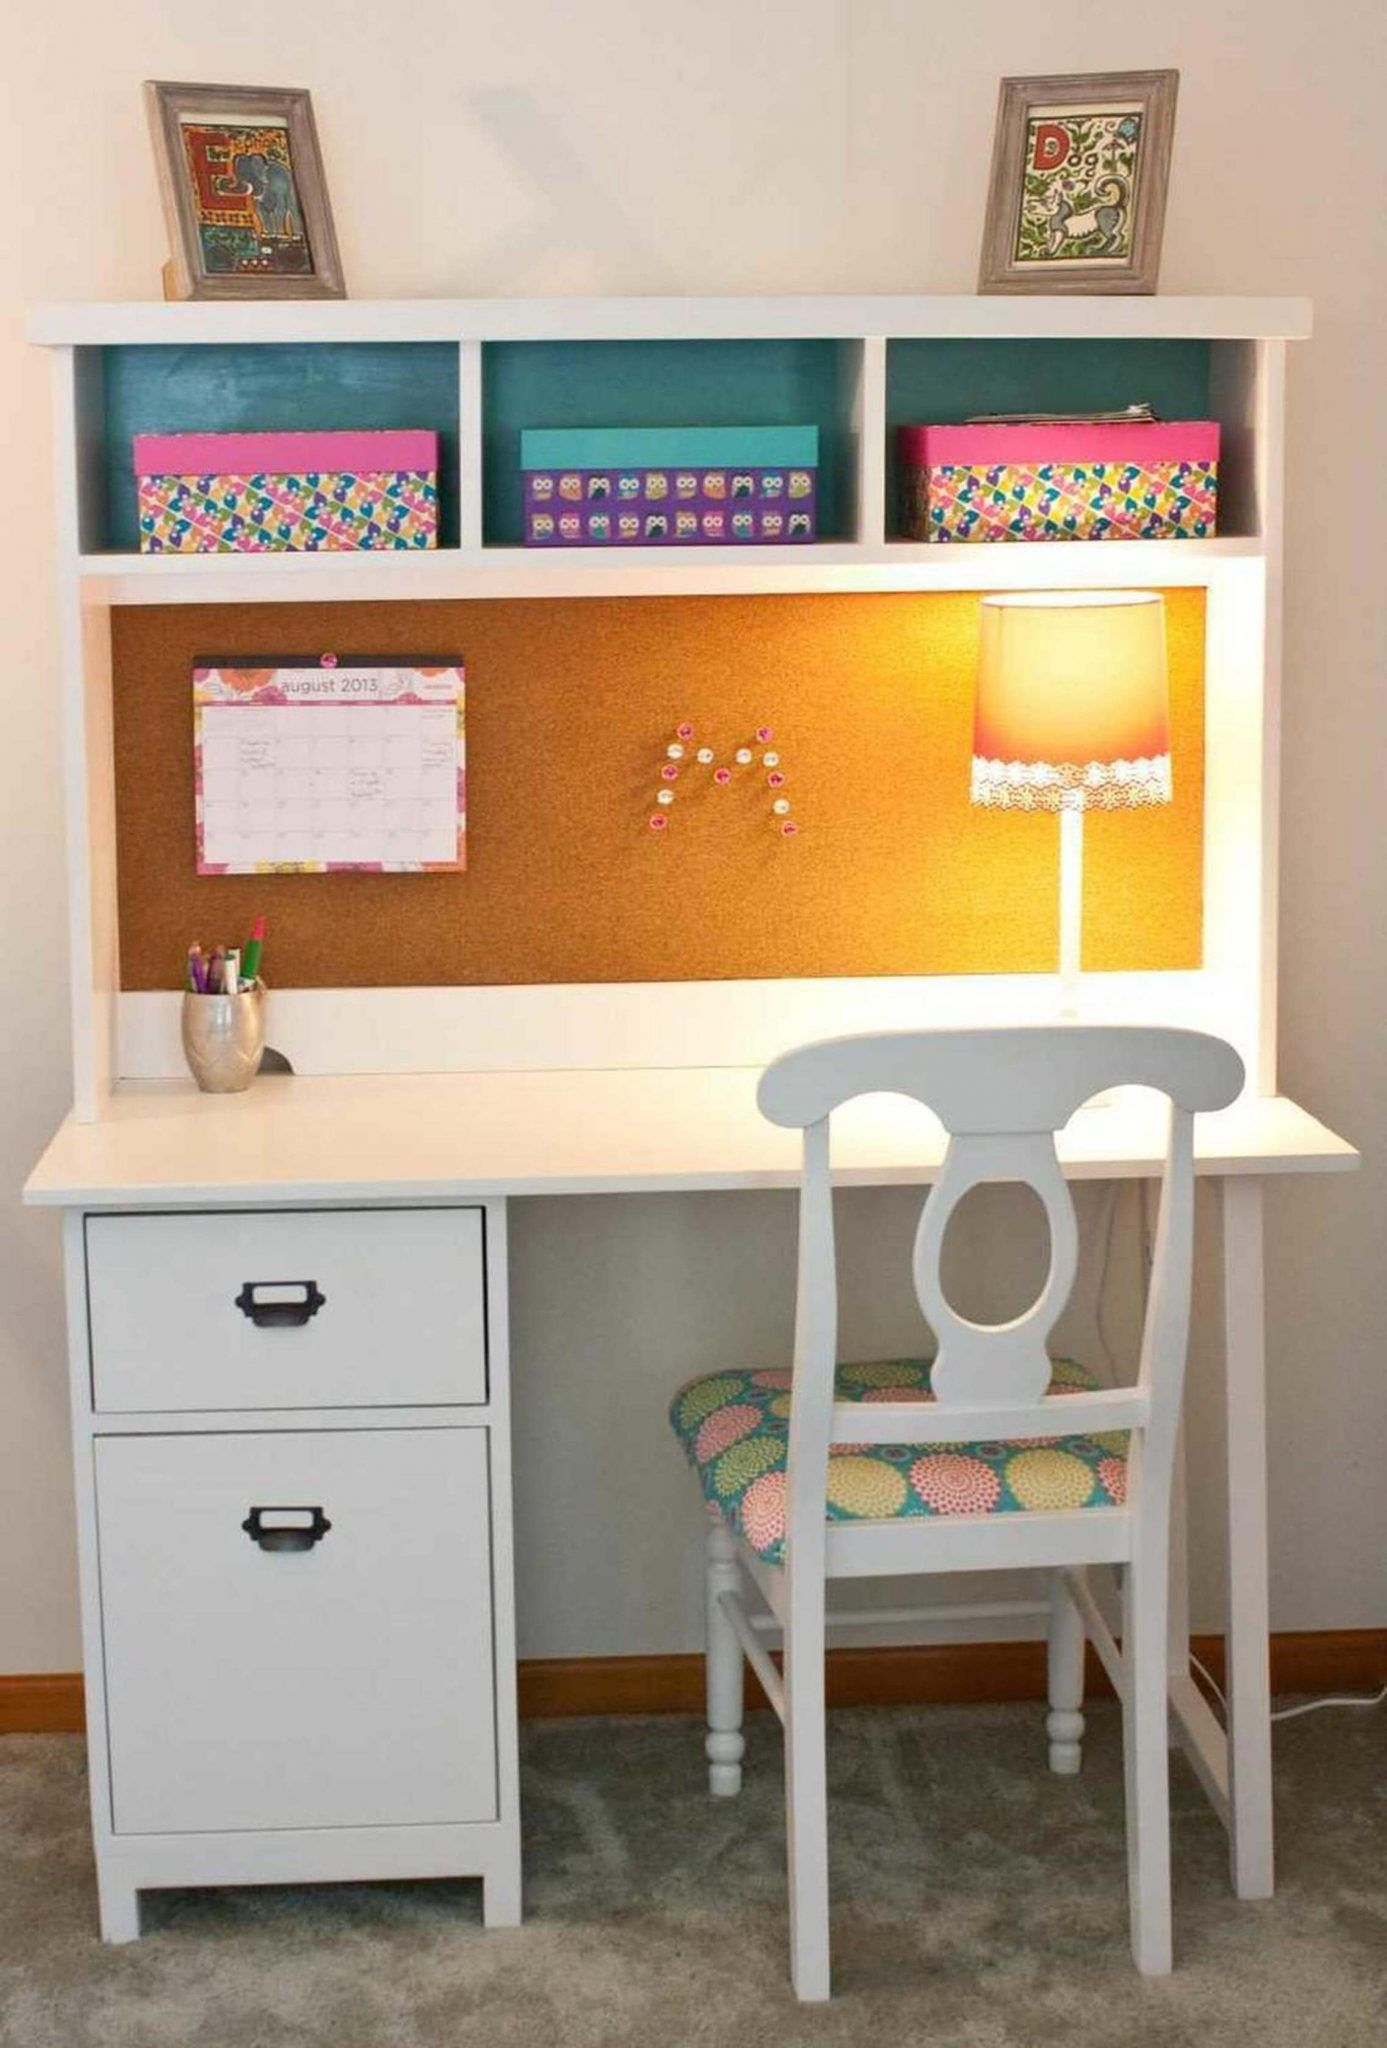 22 Diy Computer Desk Ideas That Make More Spirit Work Enthusiasthome Diy Desk Plans Diy Computer Desk Small Bedroom Desk